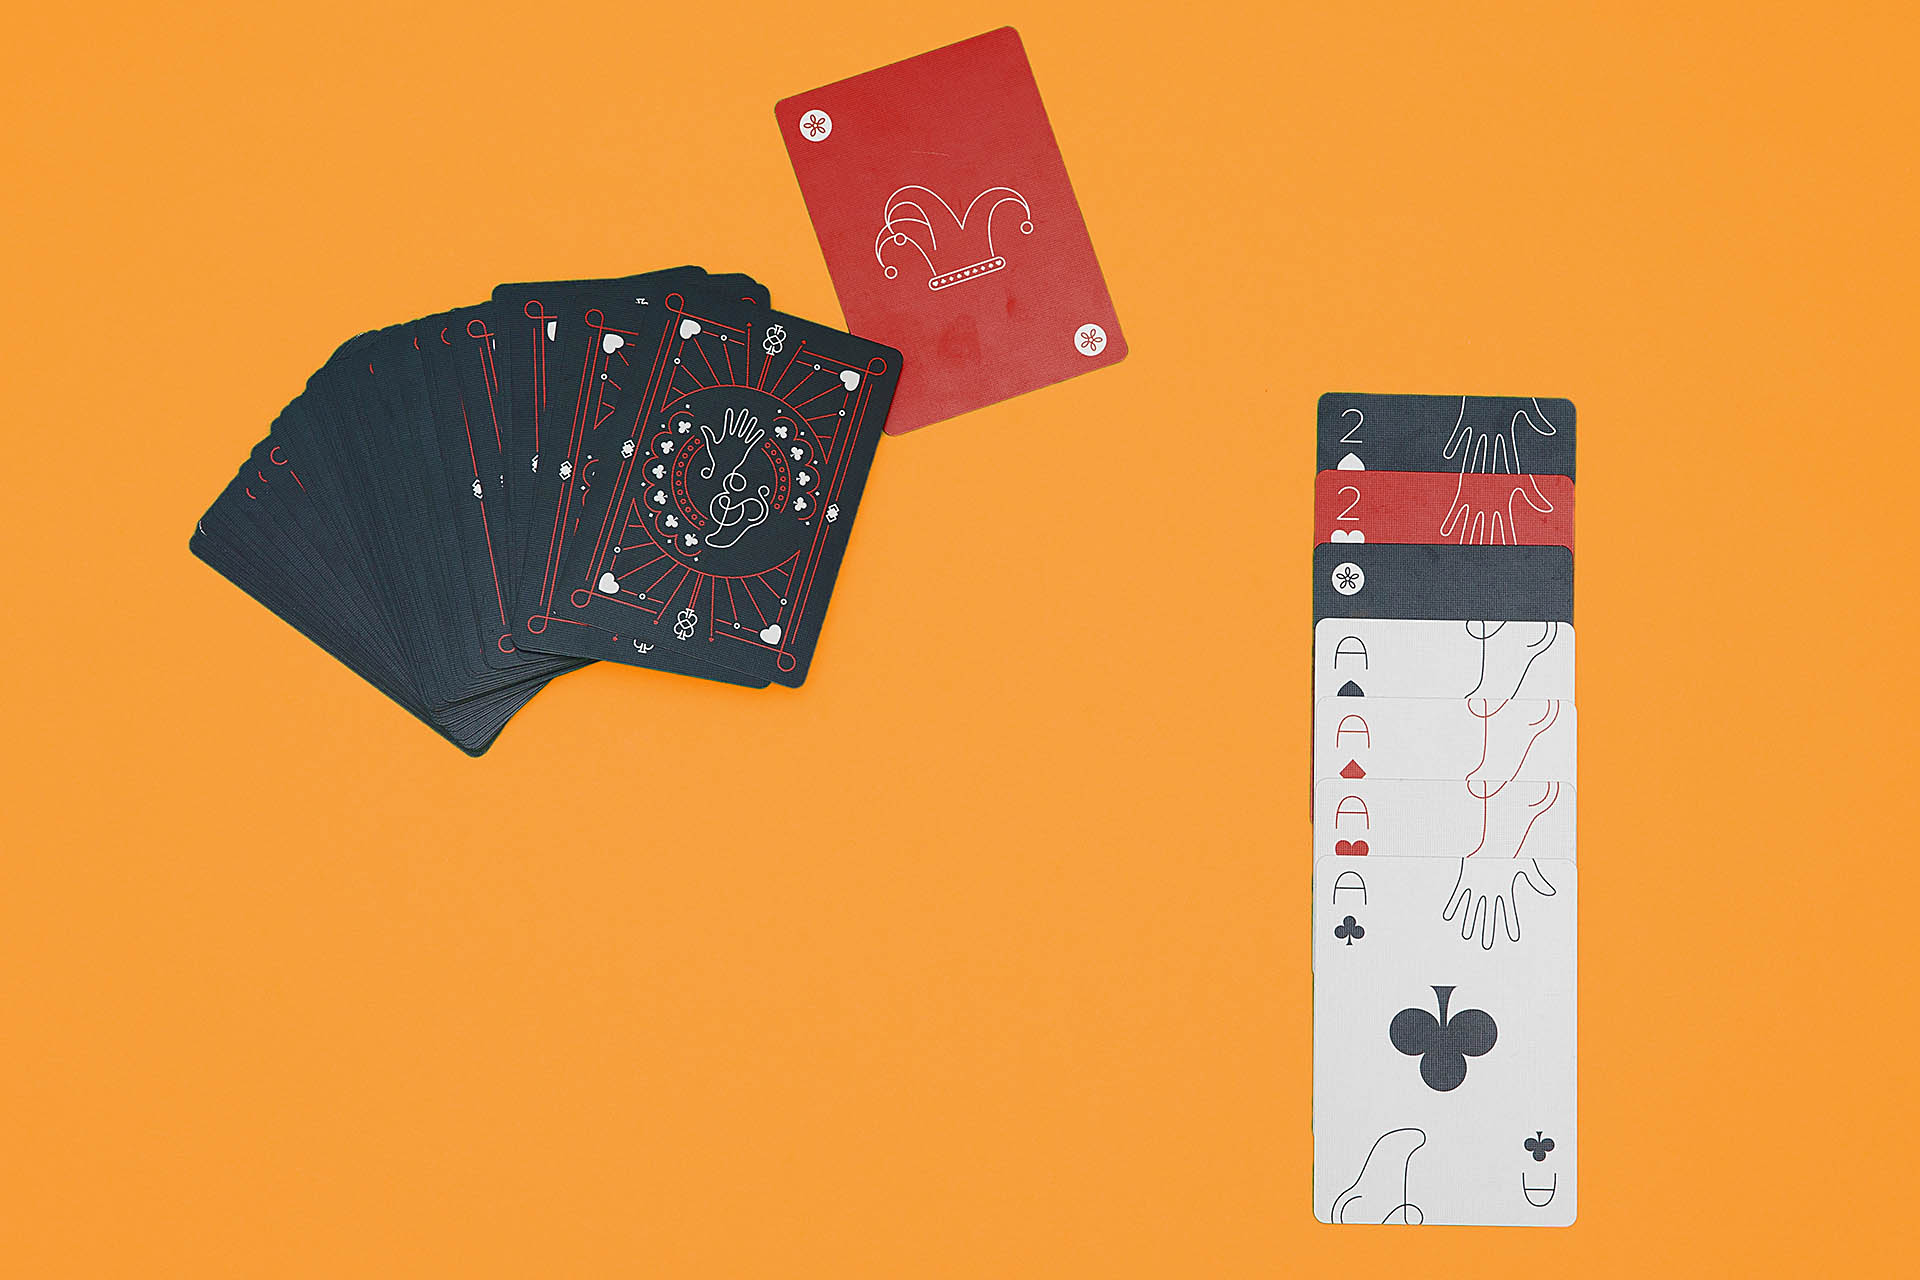 Dark gray backs of cards and a stack of aces face-up on an orange background